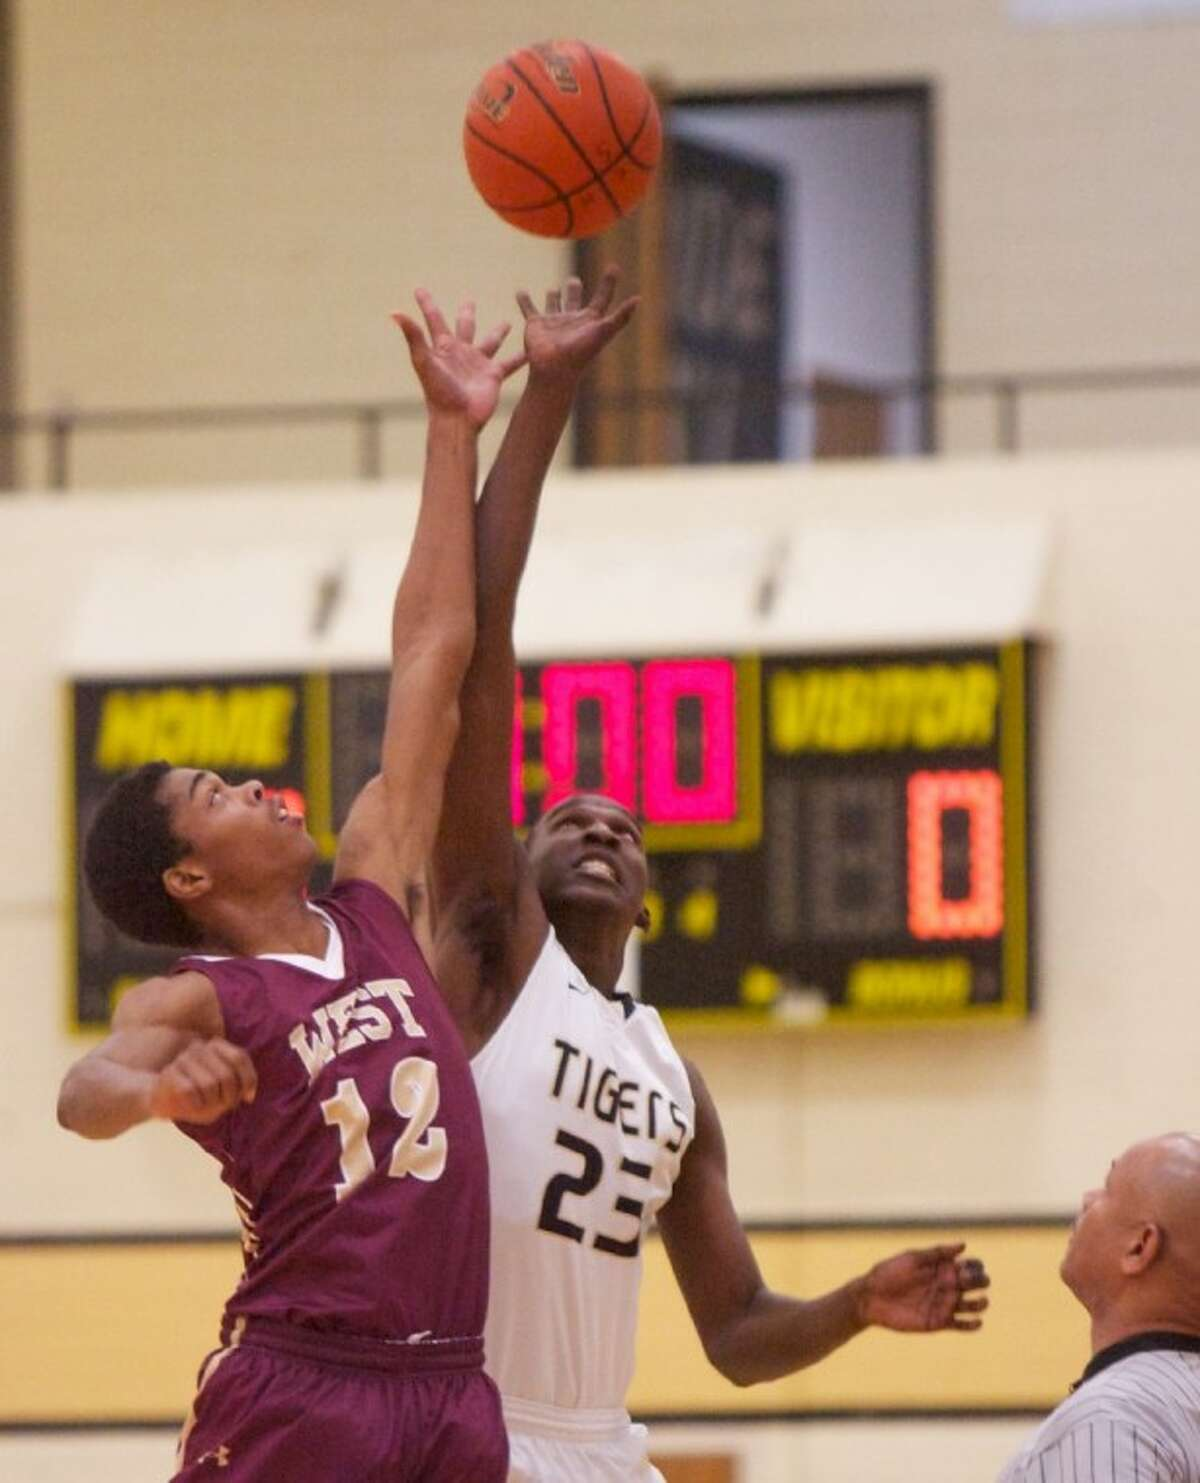 Magnolia West's Zeke Bronson battles for the tipoff Thursday against Conroe's Andre Barnes during the first round of the 48th annual Conroe Christmas Classic at Conroe High School.